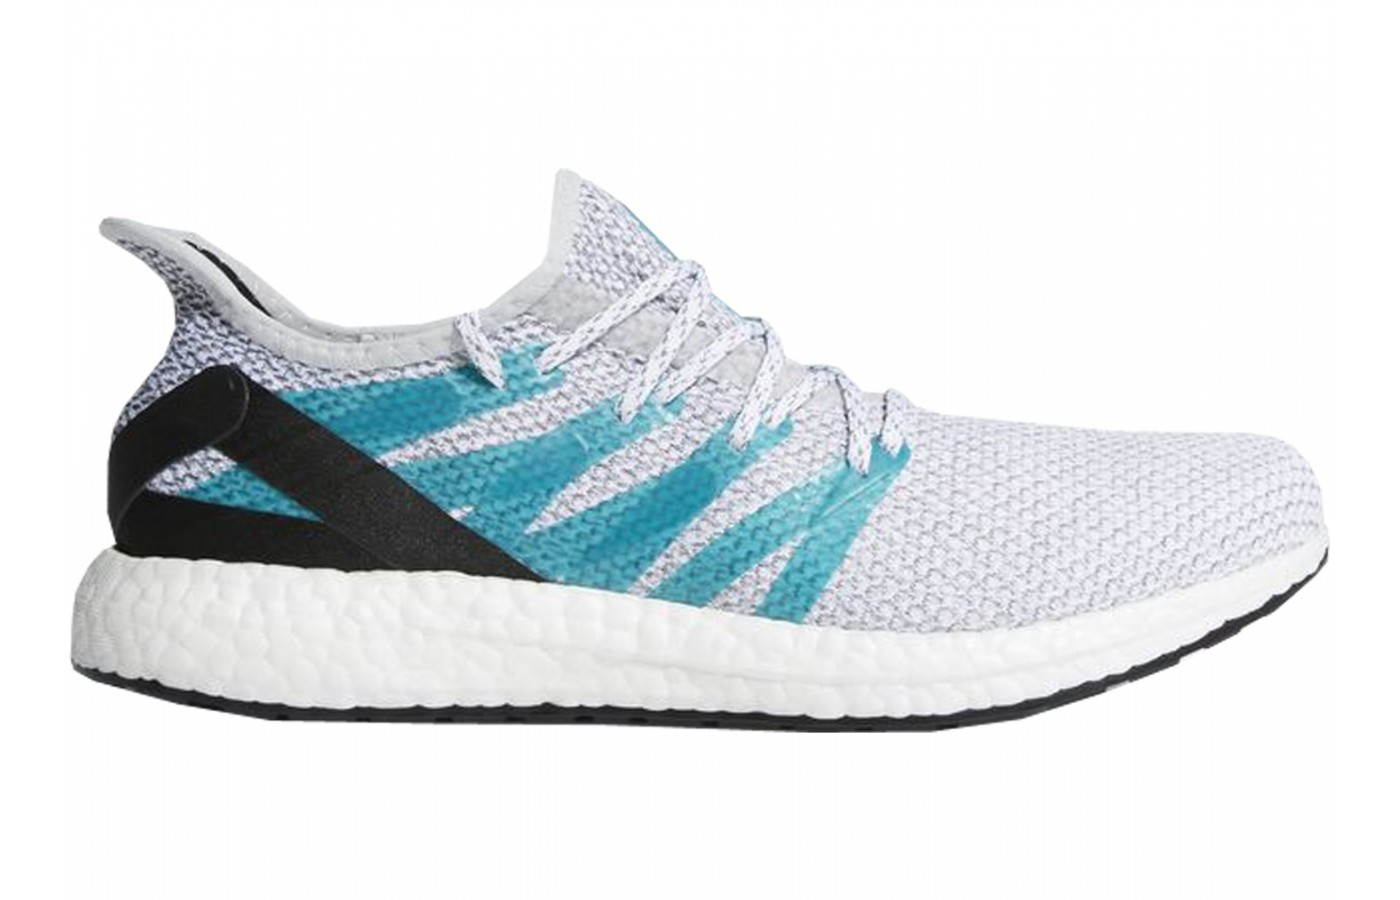 fd0946cf2e268 Adidas SpeedFactory AM4 Reviewed & Rated in 2019 | WalkJogRun